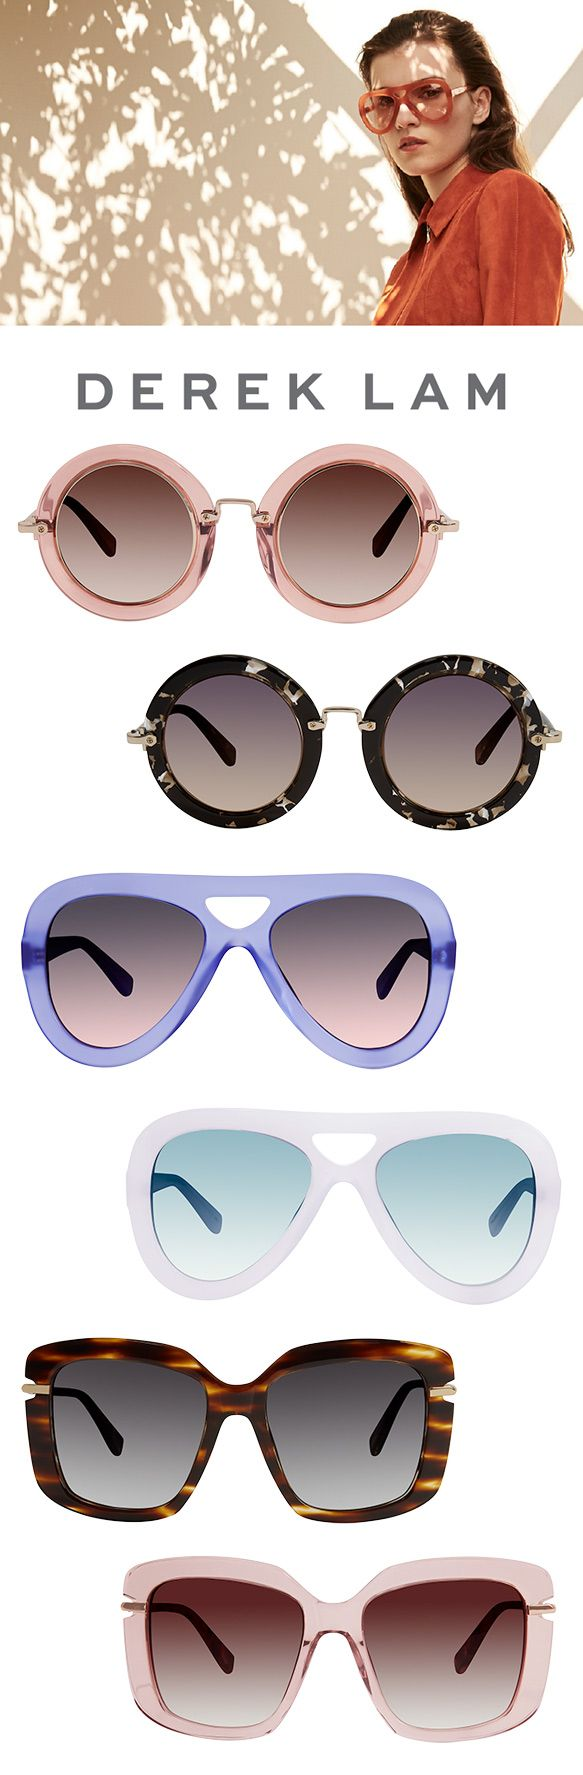 Derek Lam is back this season with what we're sure will become your ultimate sunnies for the warmer months ahead! The naturally refined brand is paying homage to 1970s influences while adding moder…